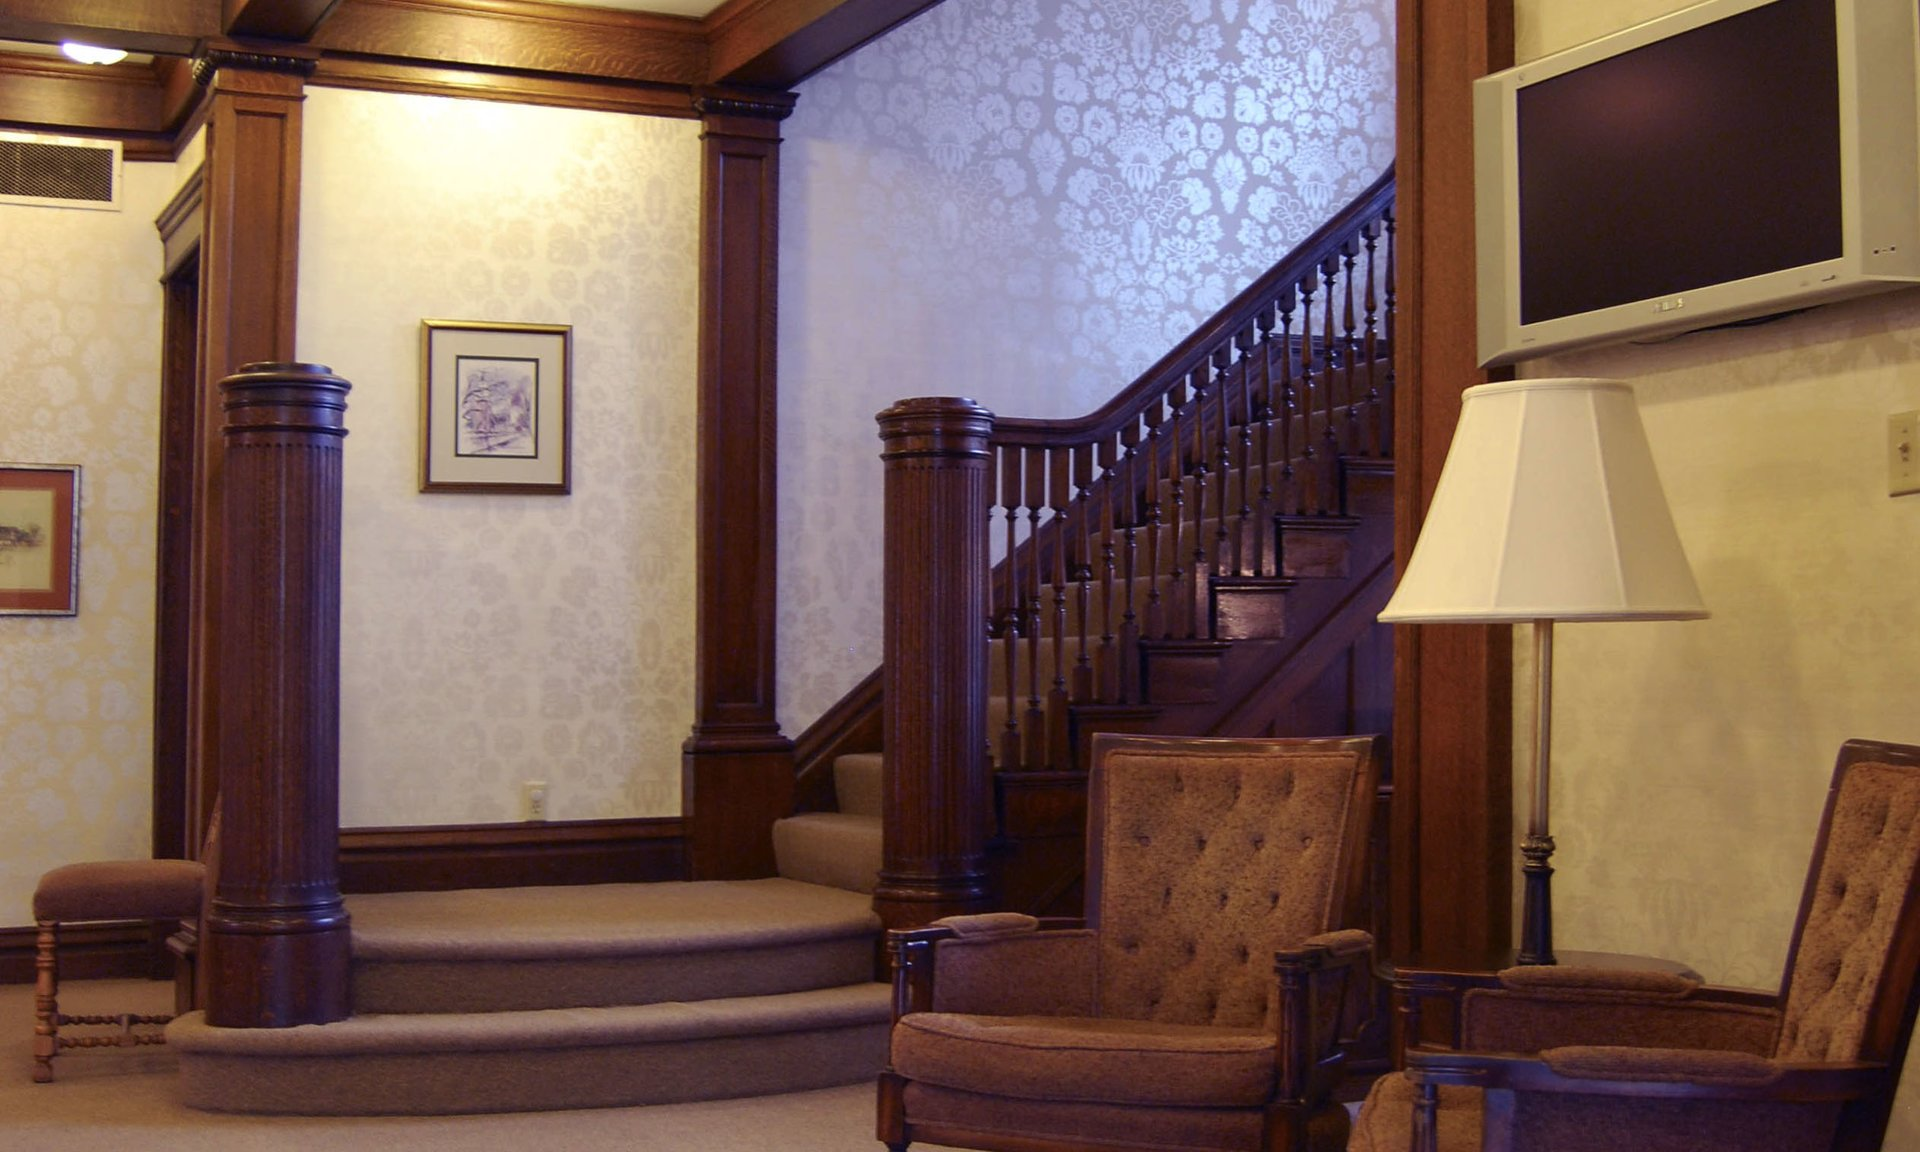 Through The Years As We Have Periodically Updated The Decor We Are Careful To Maintain The Warmth Of The Original Ornate Woodwork And Home Style Feel The